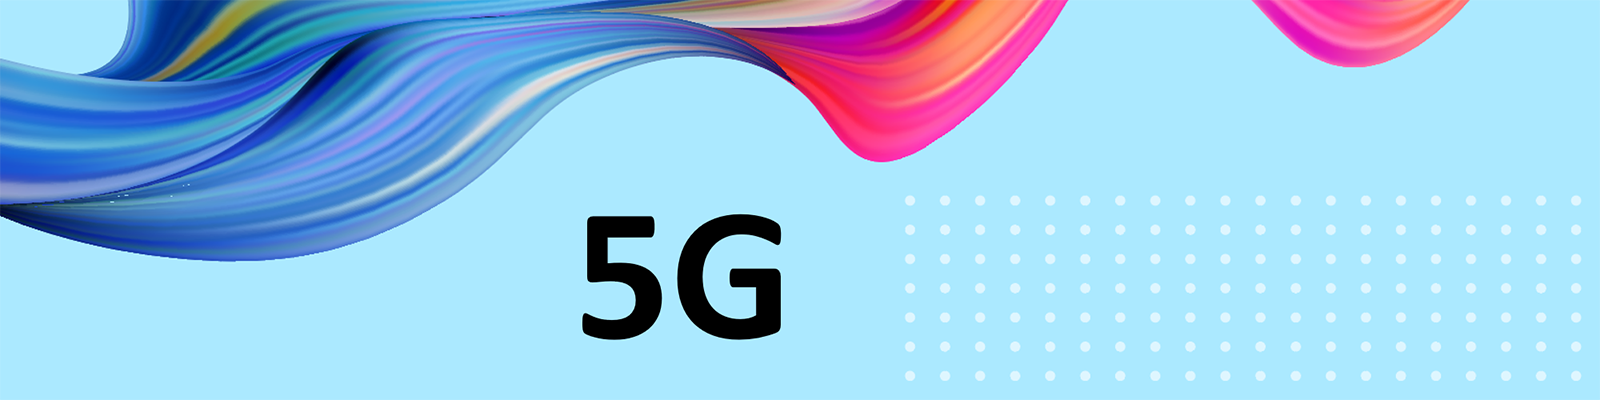 5G frequencies